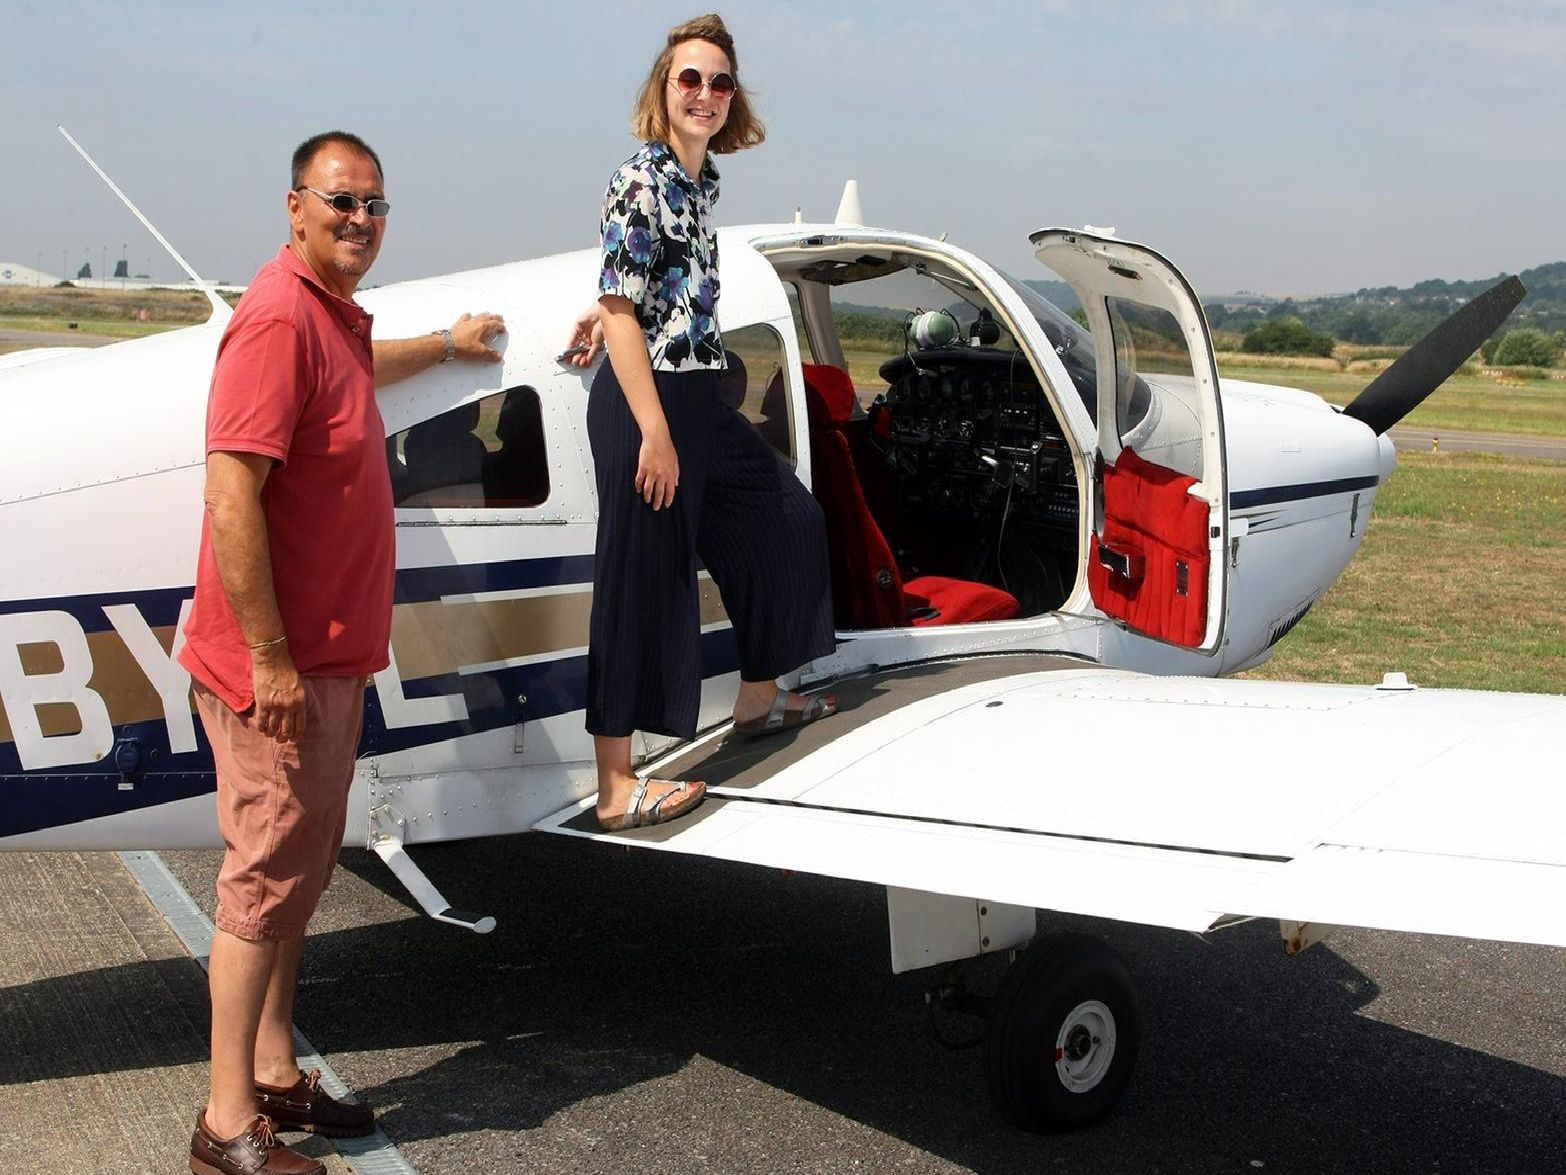 Pilot Kit Maharajh with reporter Isabella Cipirska ahead of a flight from Shoreham Airport to Brighton in July